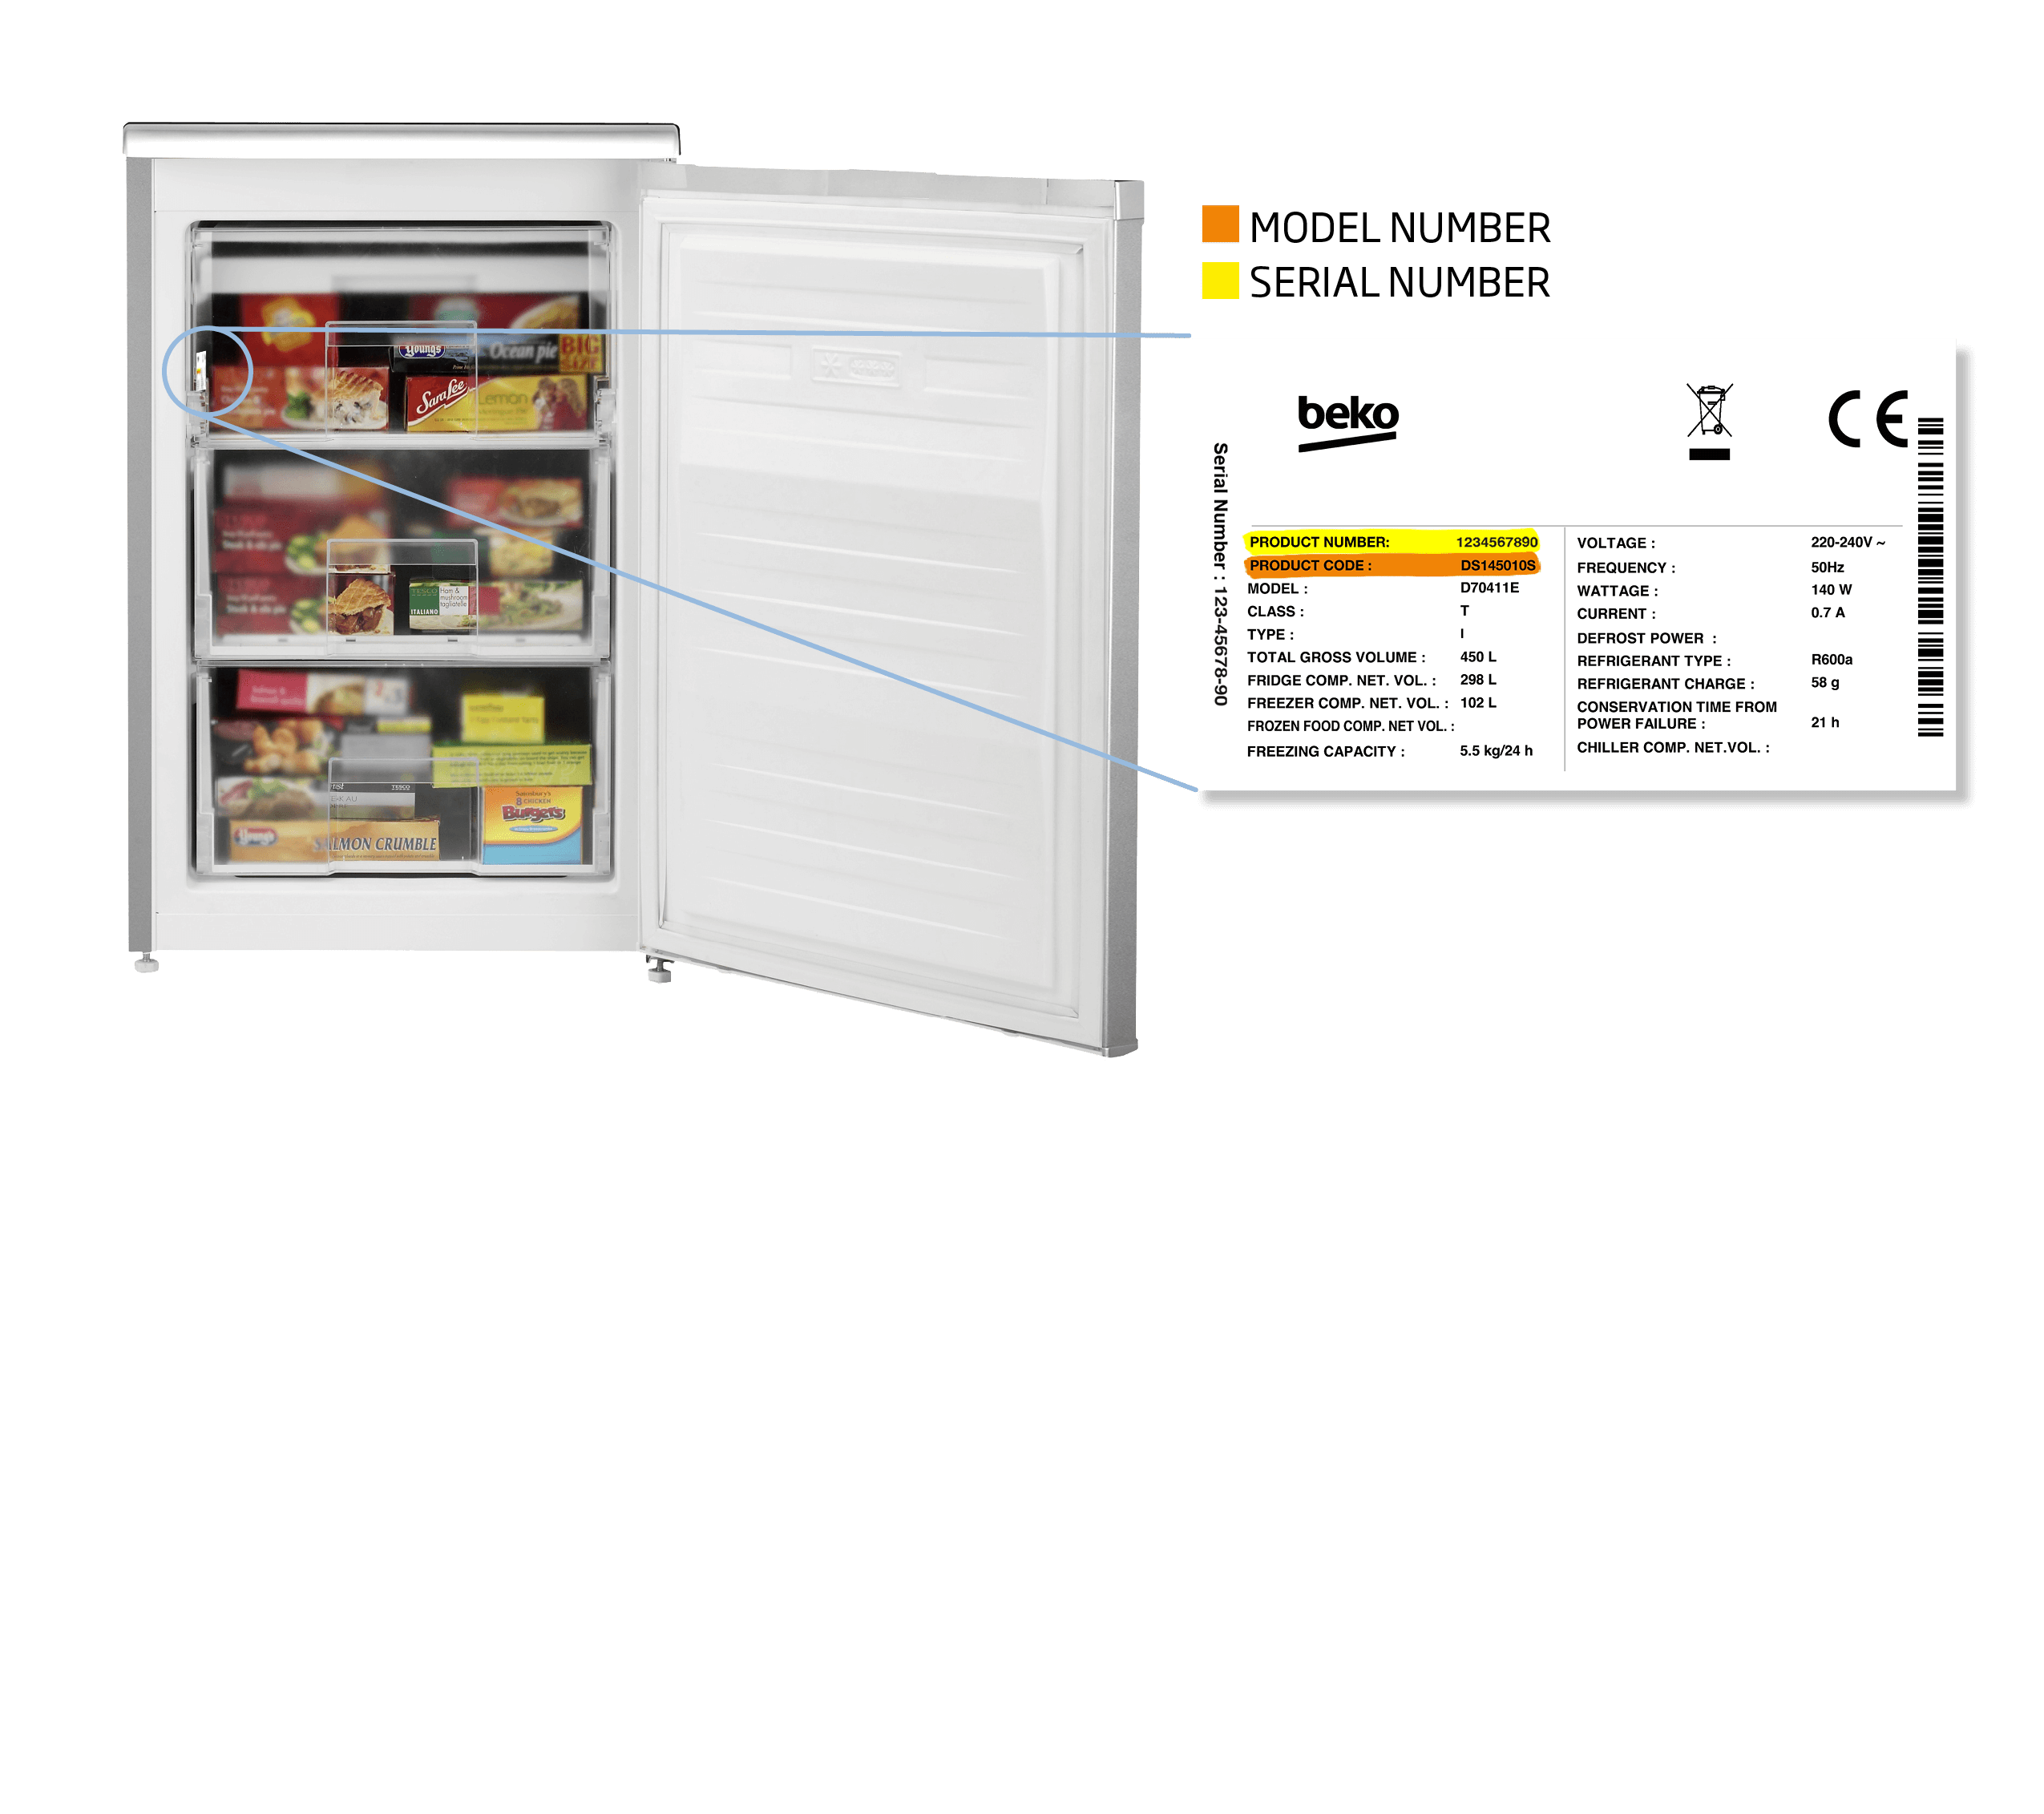 table top freezer model number